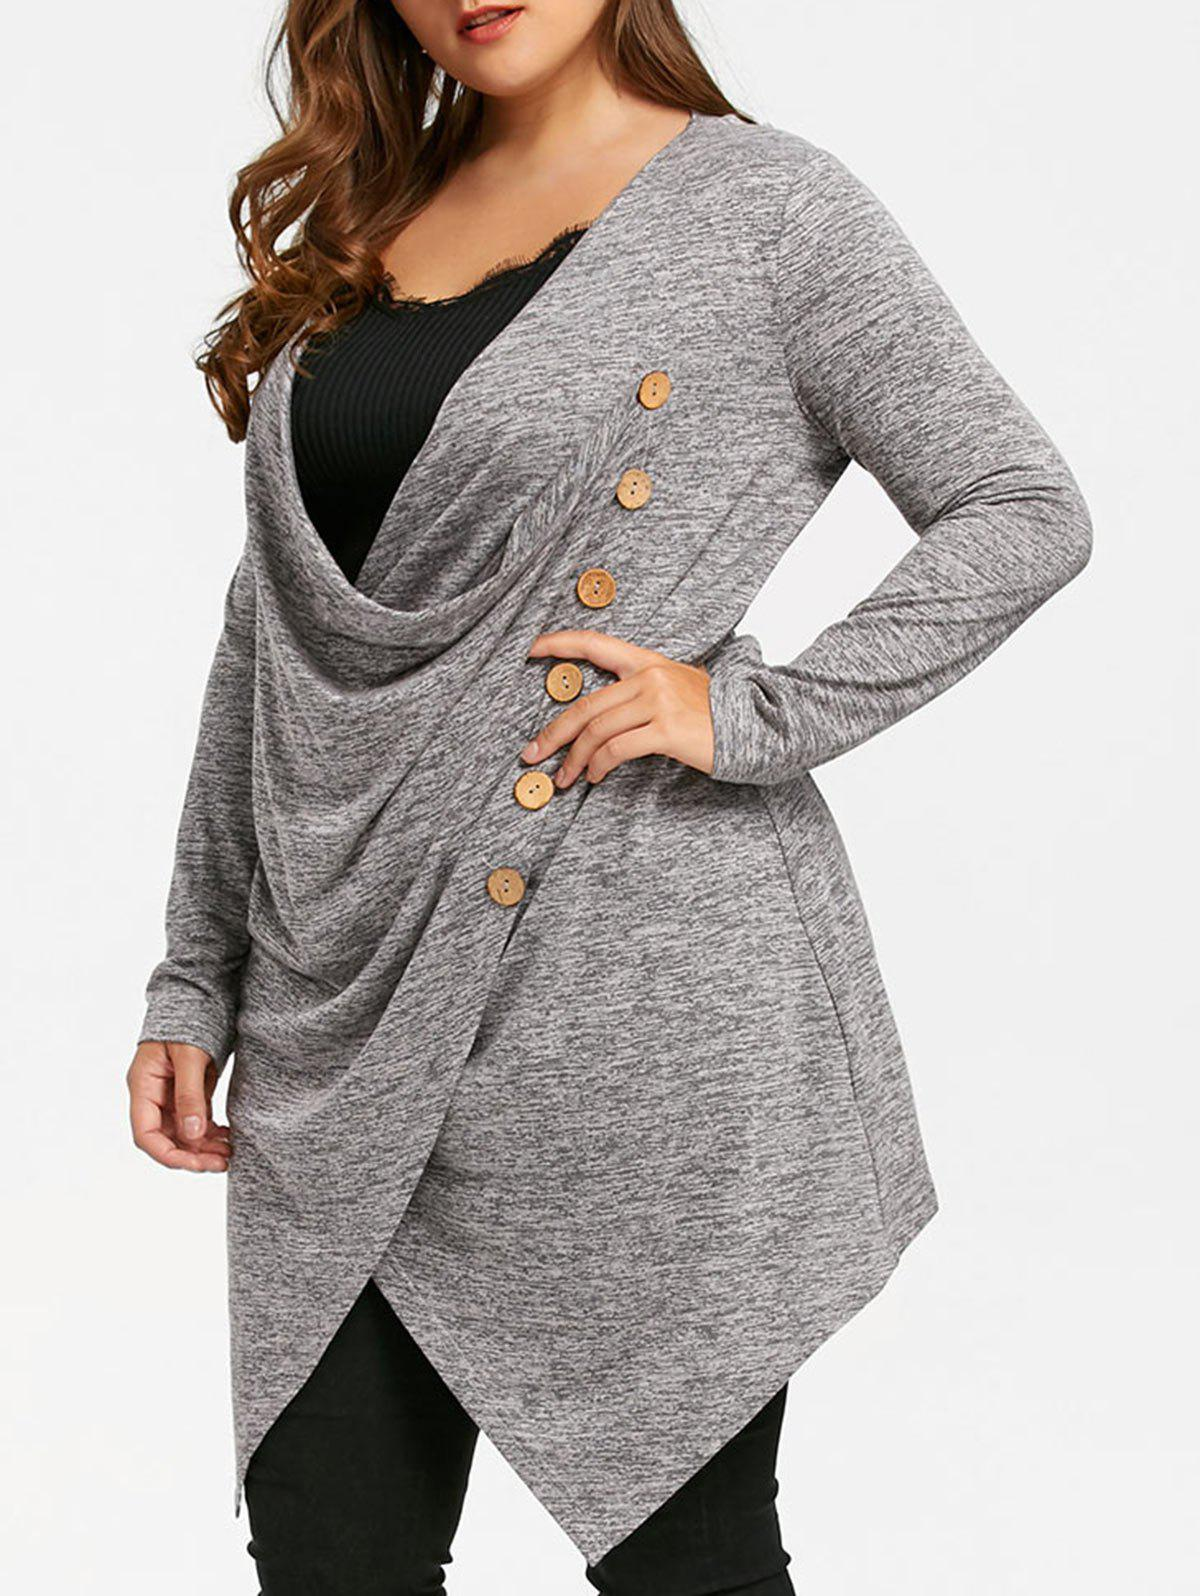 Plus Size Crossover Marled Longline TopWOMEN<br><br>Size: XL; Color: GRAY; Material: Rayon; Shirt Length: Long; Sleeve Length: Full; Collar: Cowl Neck; Style: Casual; Season: Fall,Spring; Embellishment: Button; Pattern Type: Solid; Weight: 0.3800kg; Package Contents: 1 x Top;